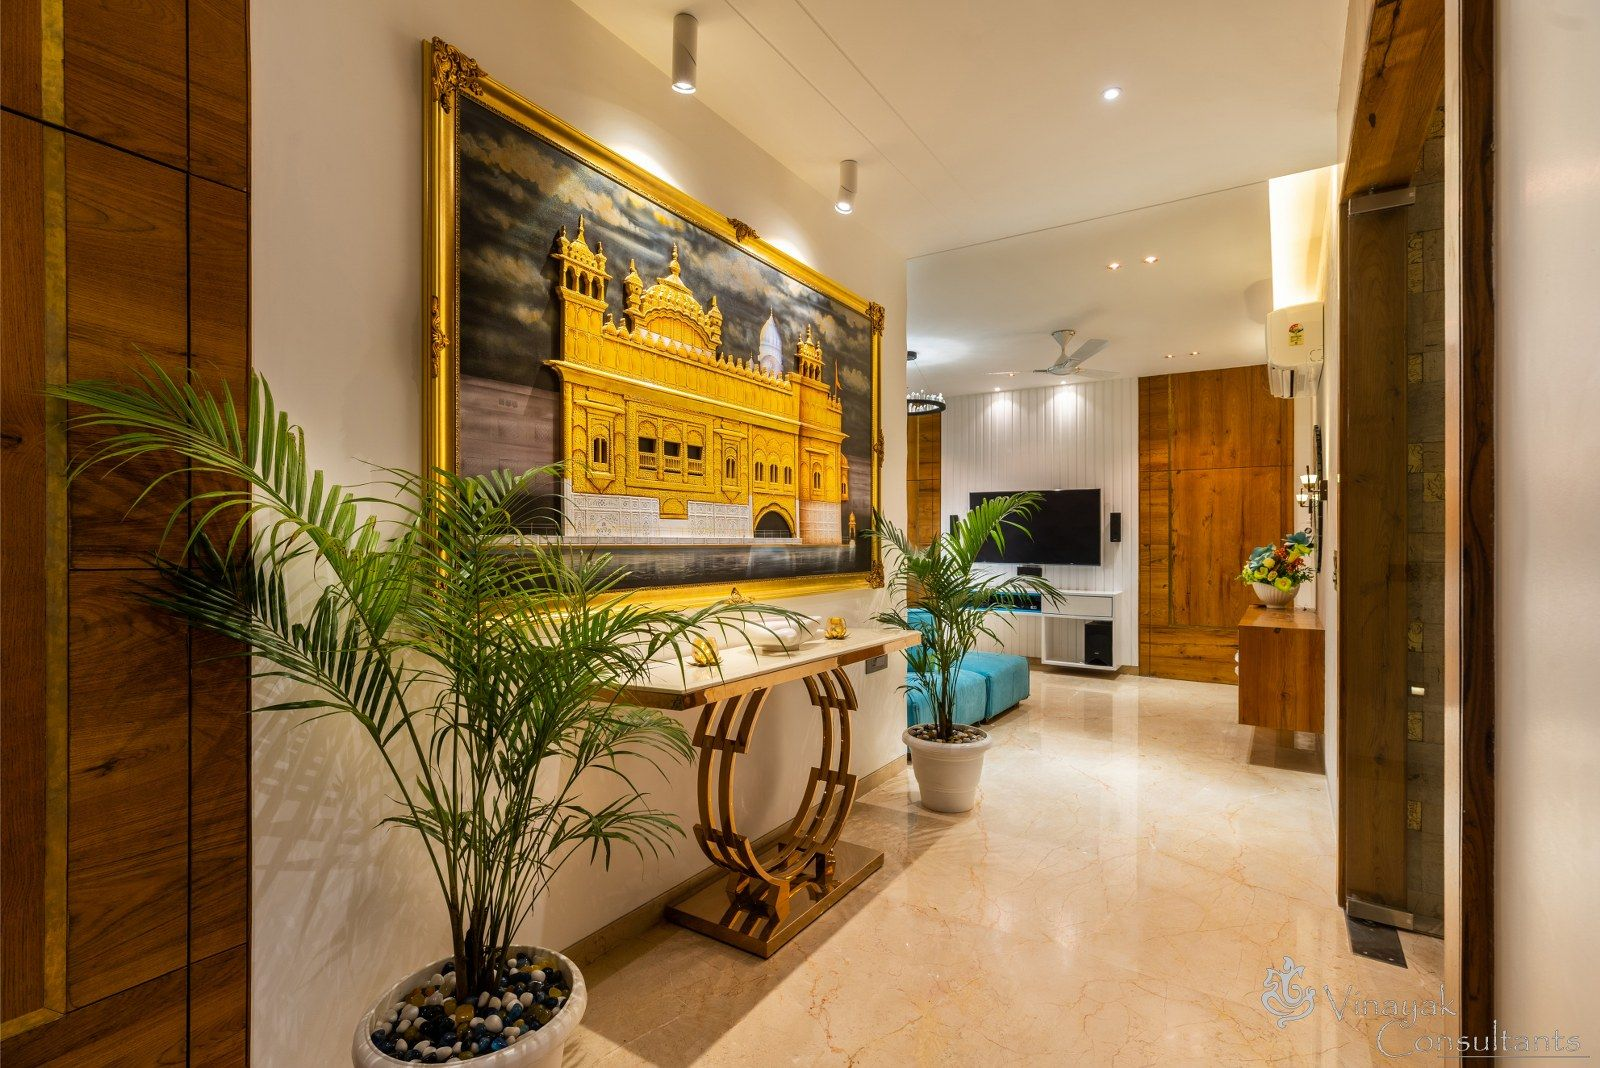 Bungalow Interior A Transformation From Dull To Bright Vinayak